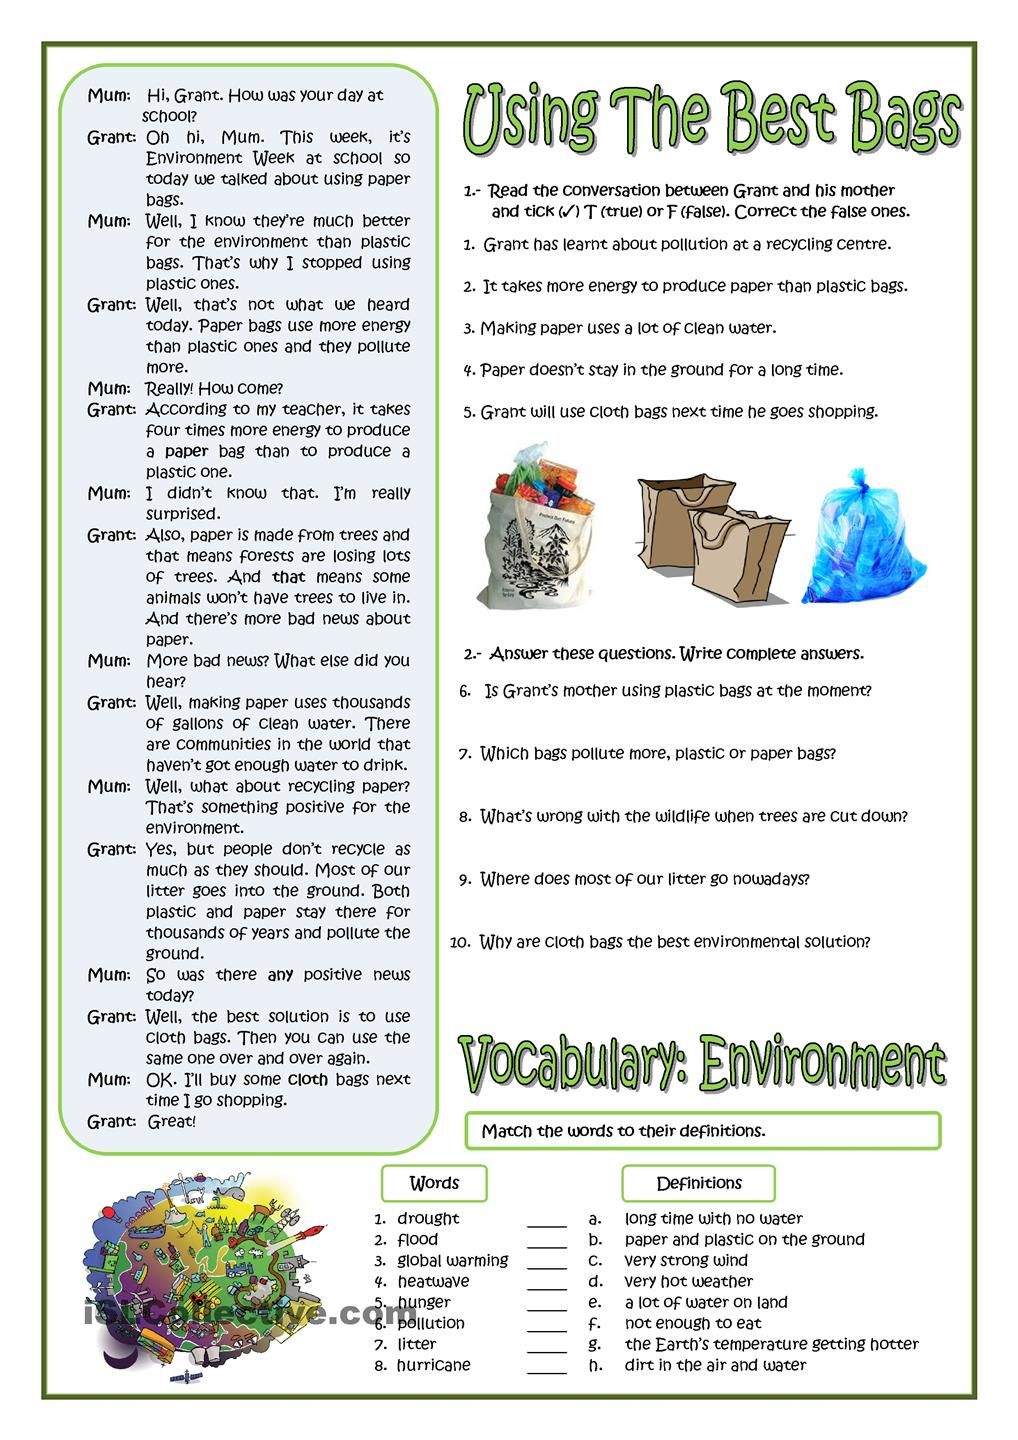 Using The Best Bags English Worksheets For Kids Best Bags Esl Vocabulary [ 1440 x 1018 Pixel ]